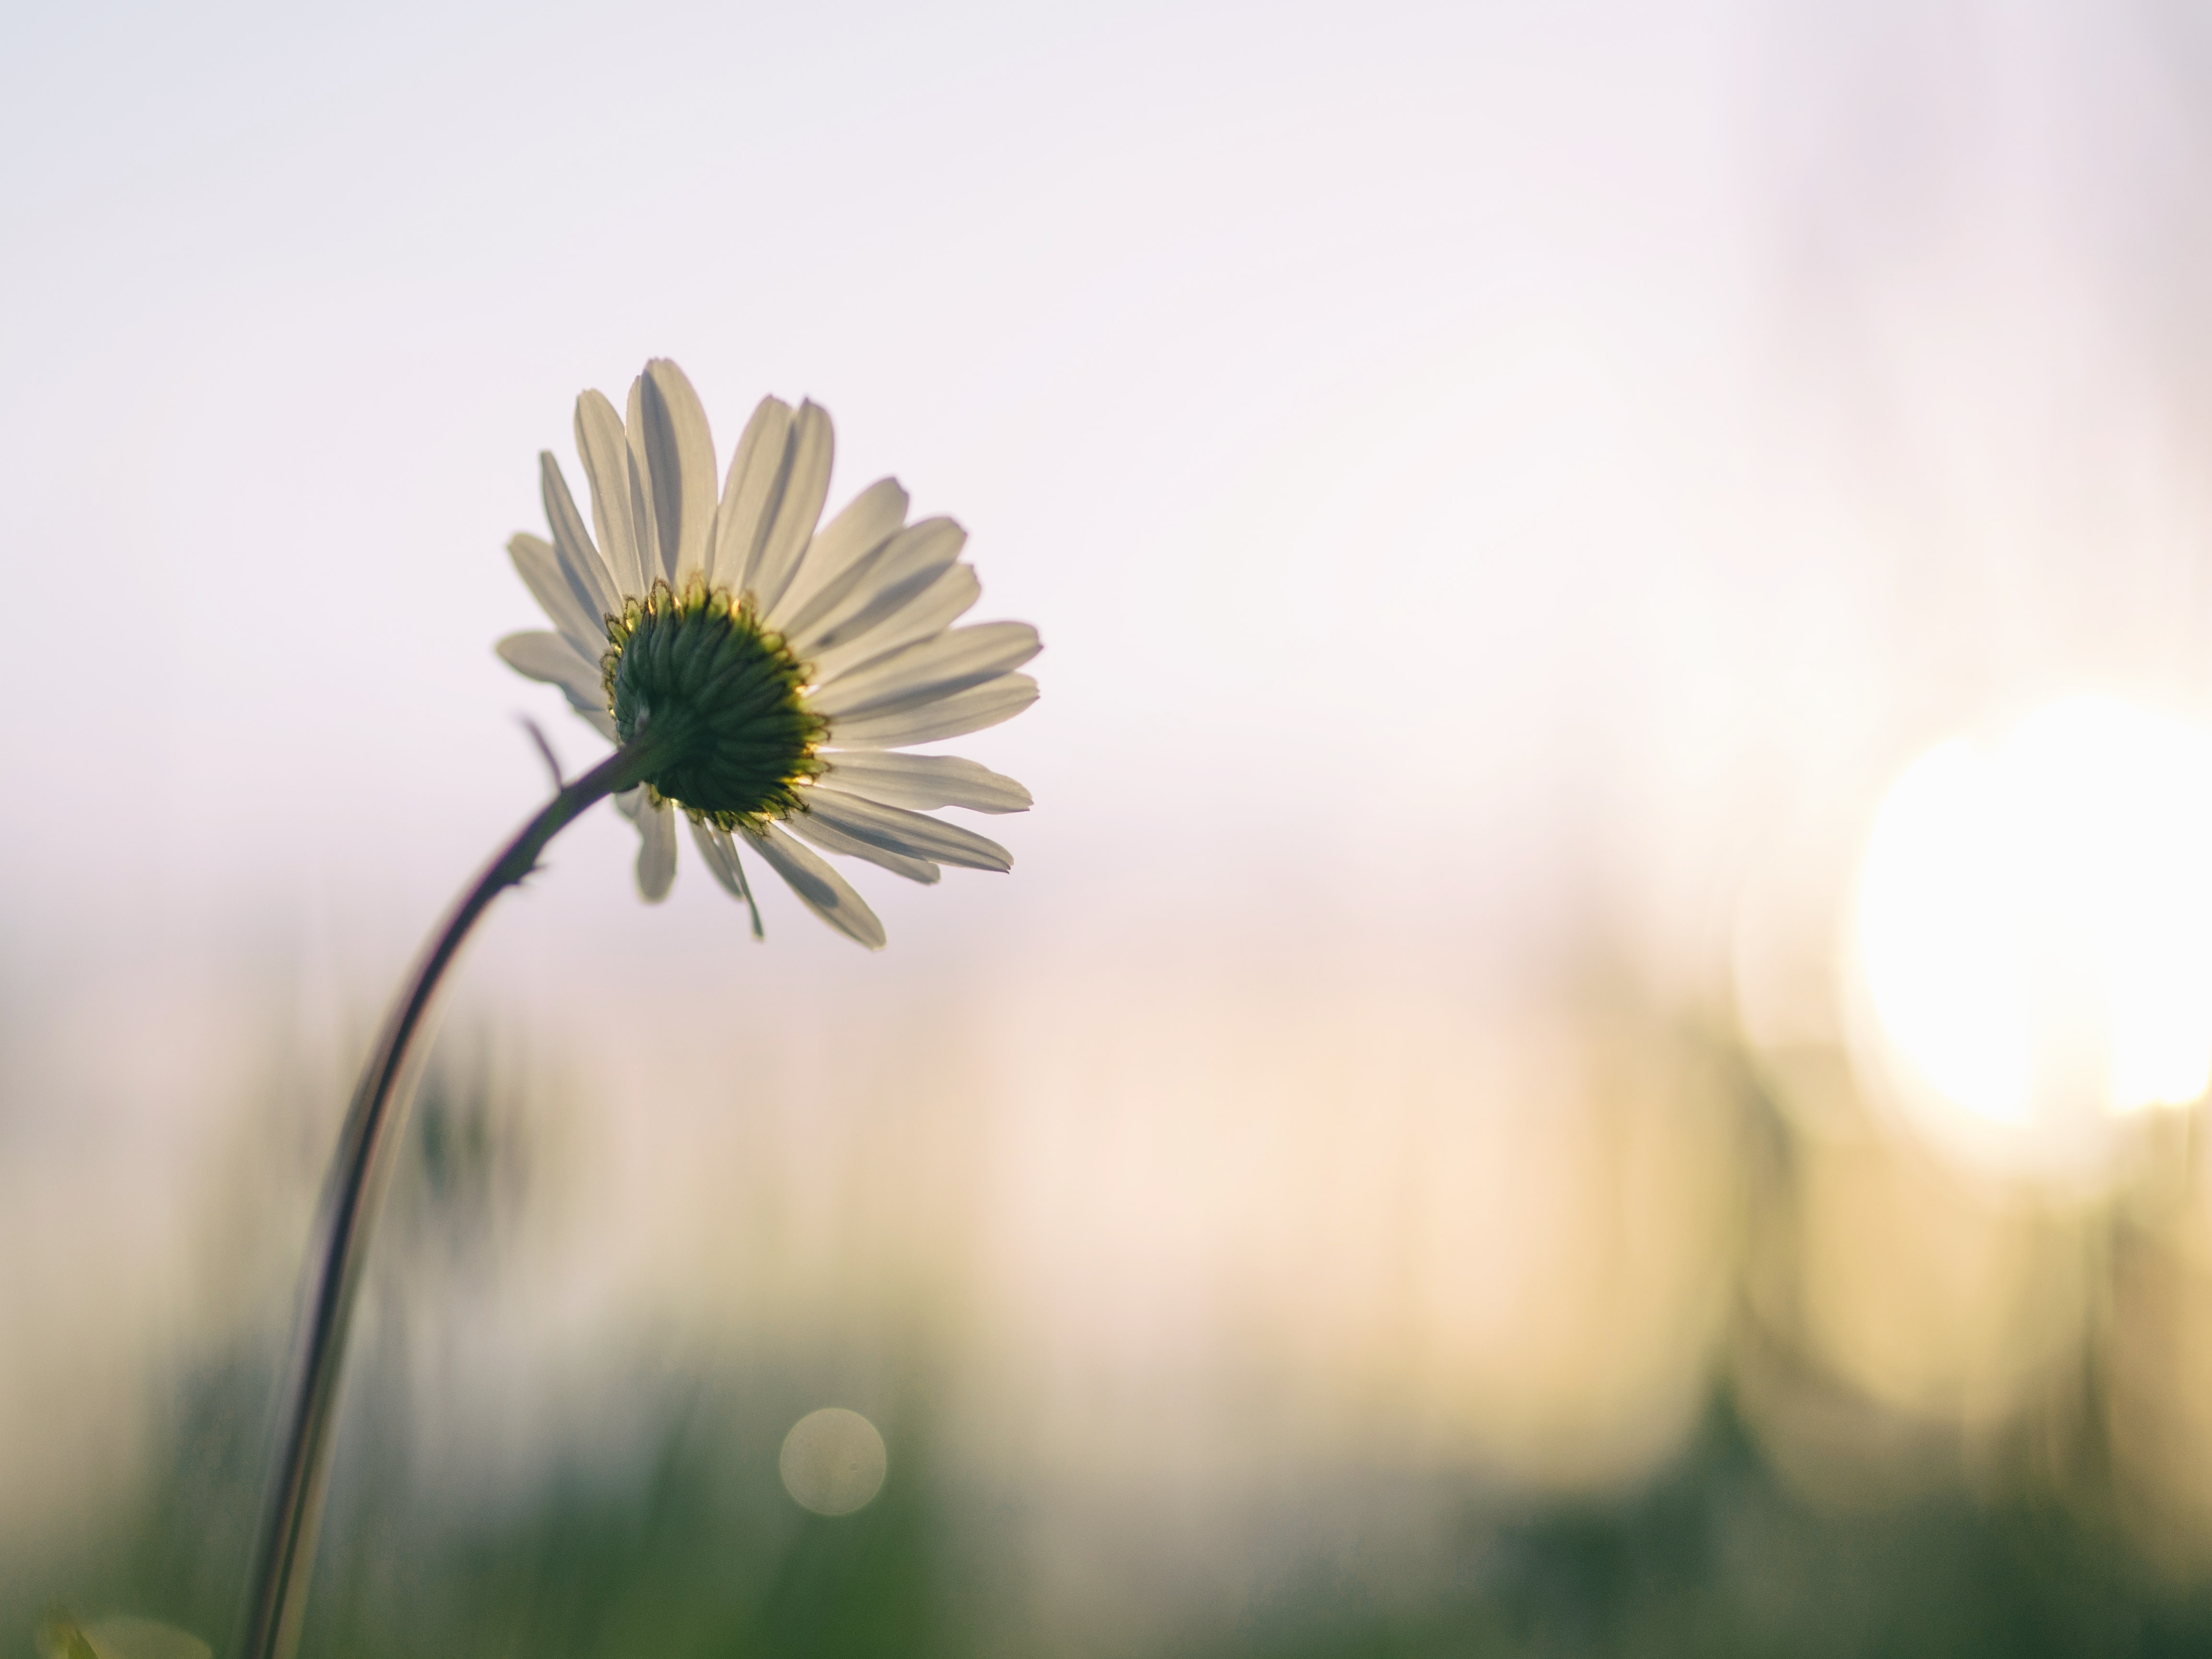 A low-angle shot of a white daisy leaning towards the sun